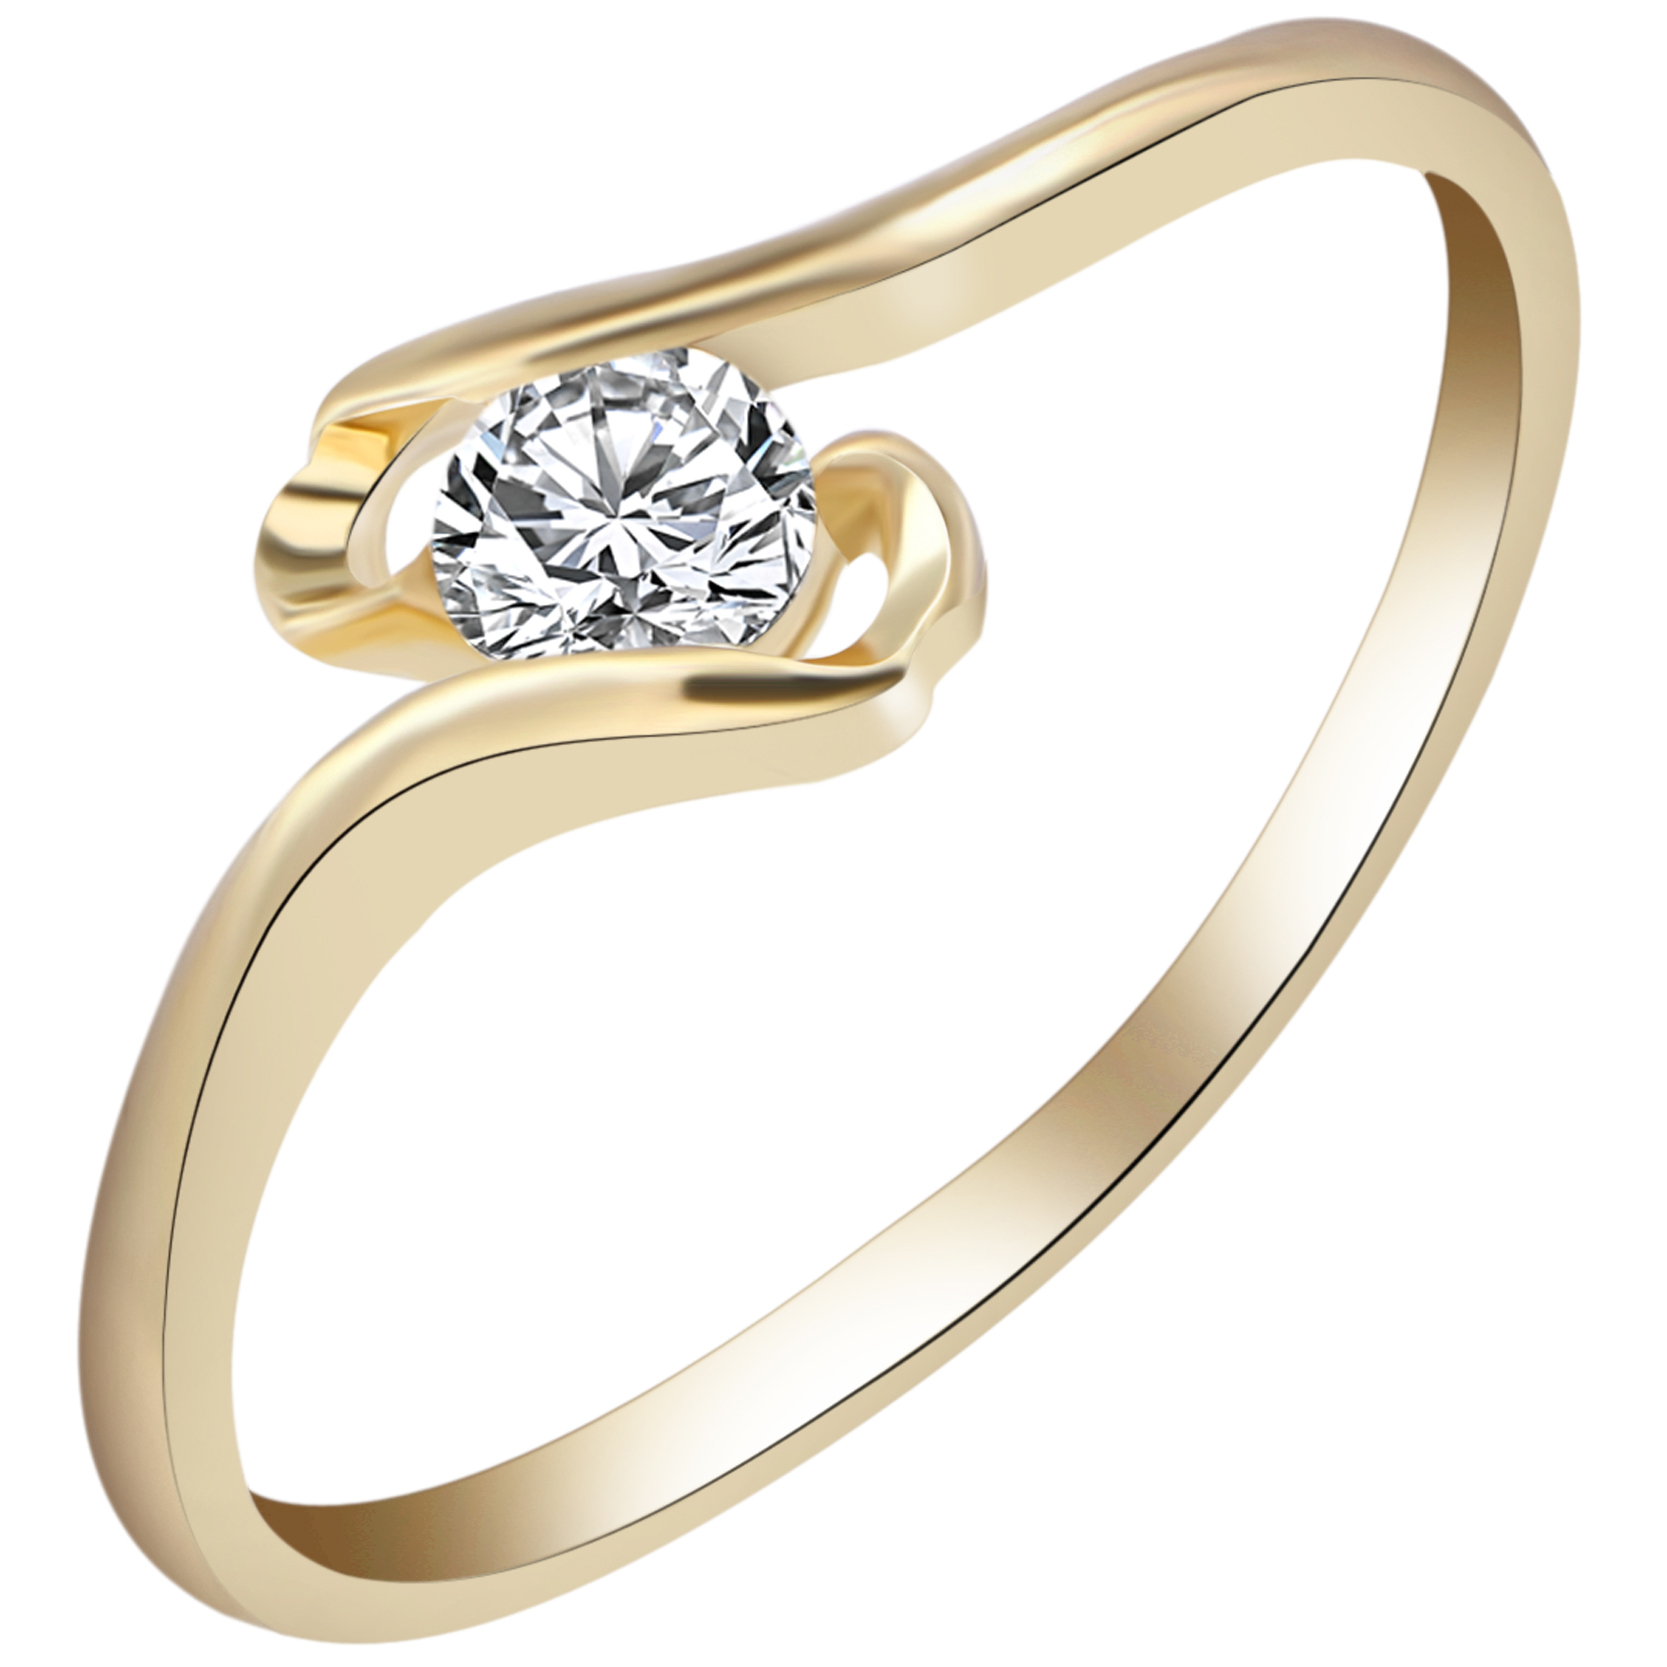 Women Shiny Gold Plated Rings Fashion Wedding Band Crystal Zircon Ring Jewelry  eBay